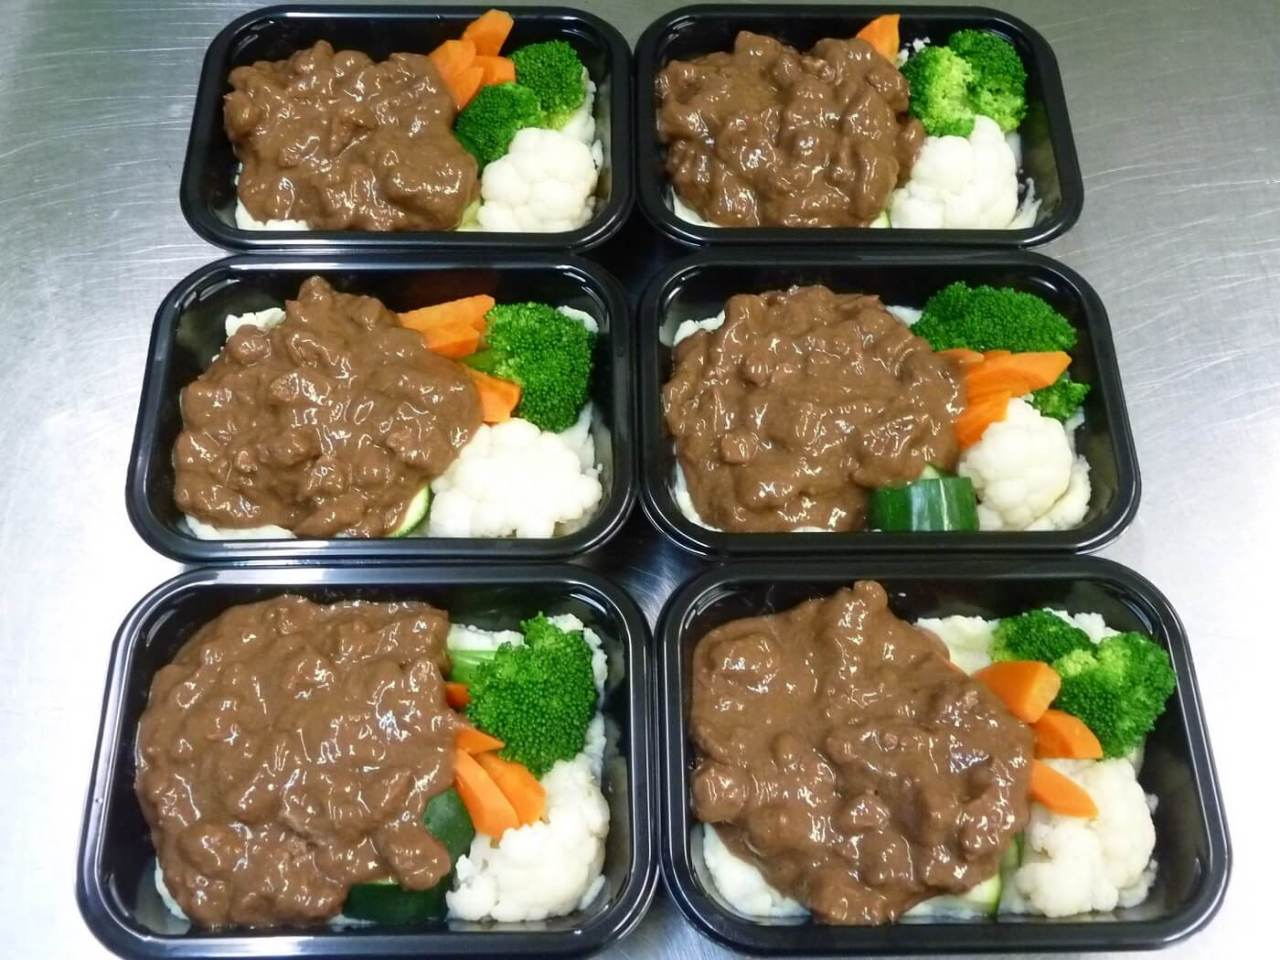 Six Beef Guinness ready-meals in packaging trays